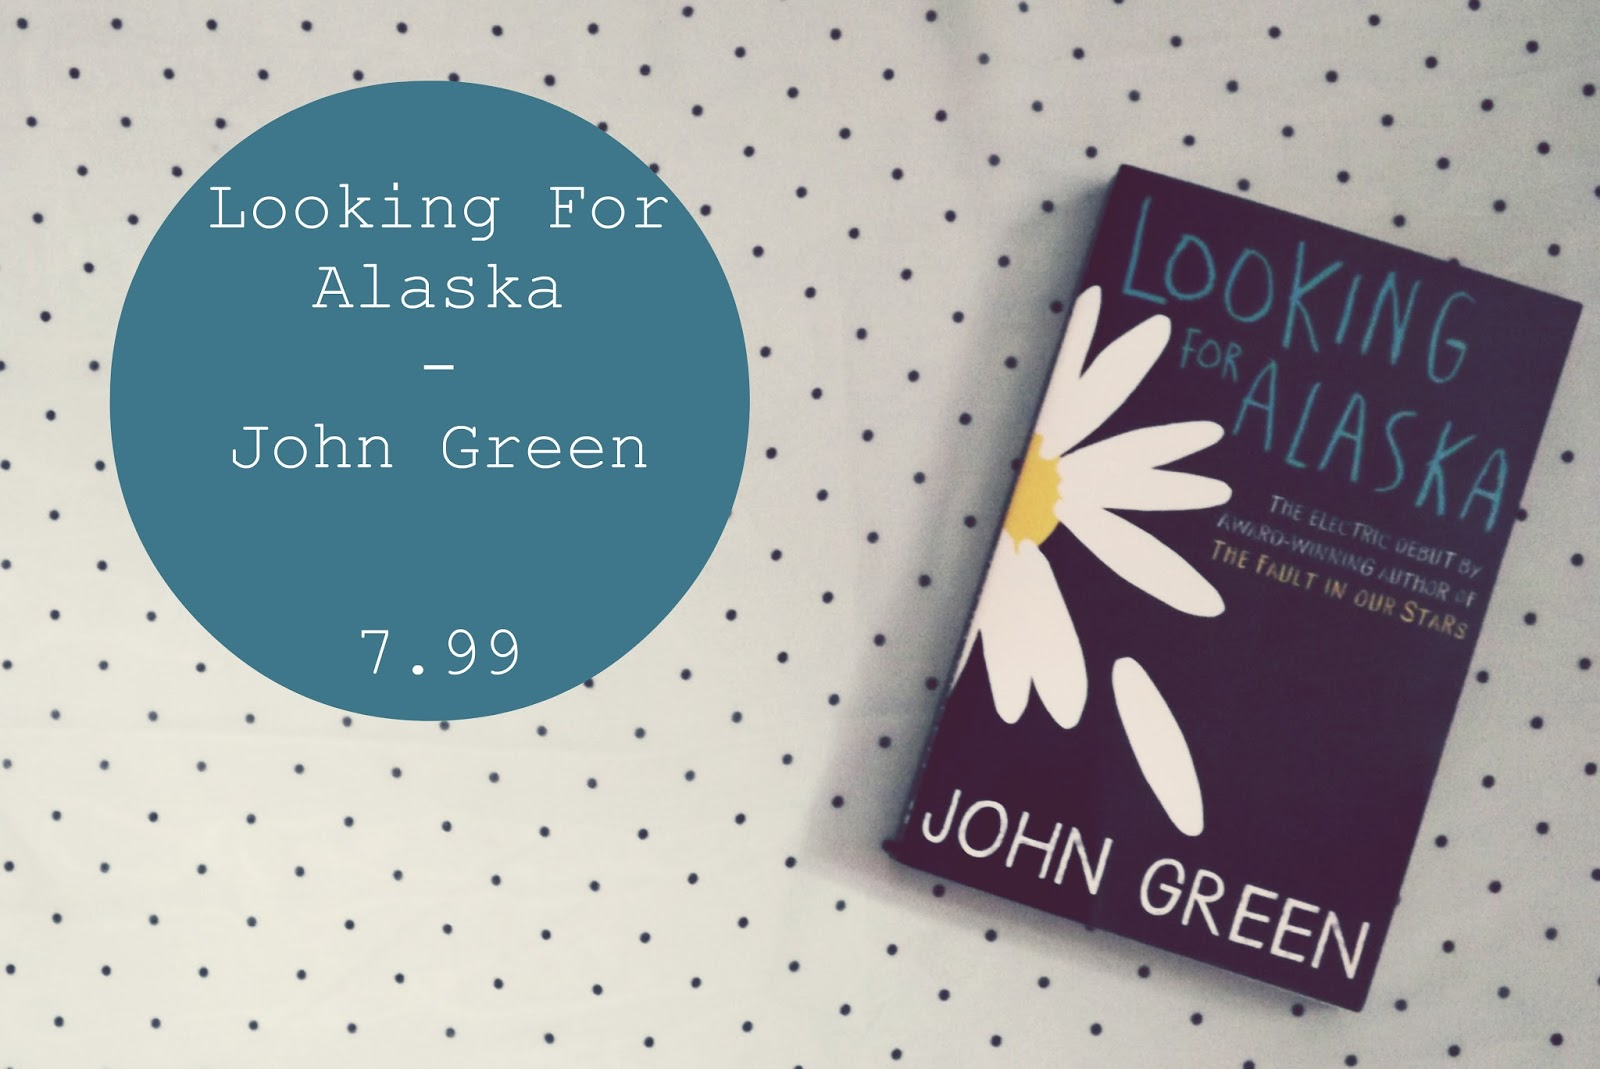 looking for alaska book review This was my first john green experience and i loved it looking for alaska reminded me a lot of jd salinger's catcher in rye that i read in highschool, aka the only book that i really enjoyed reading in school.